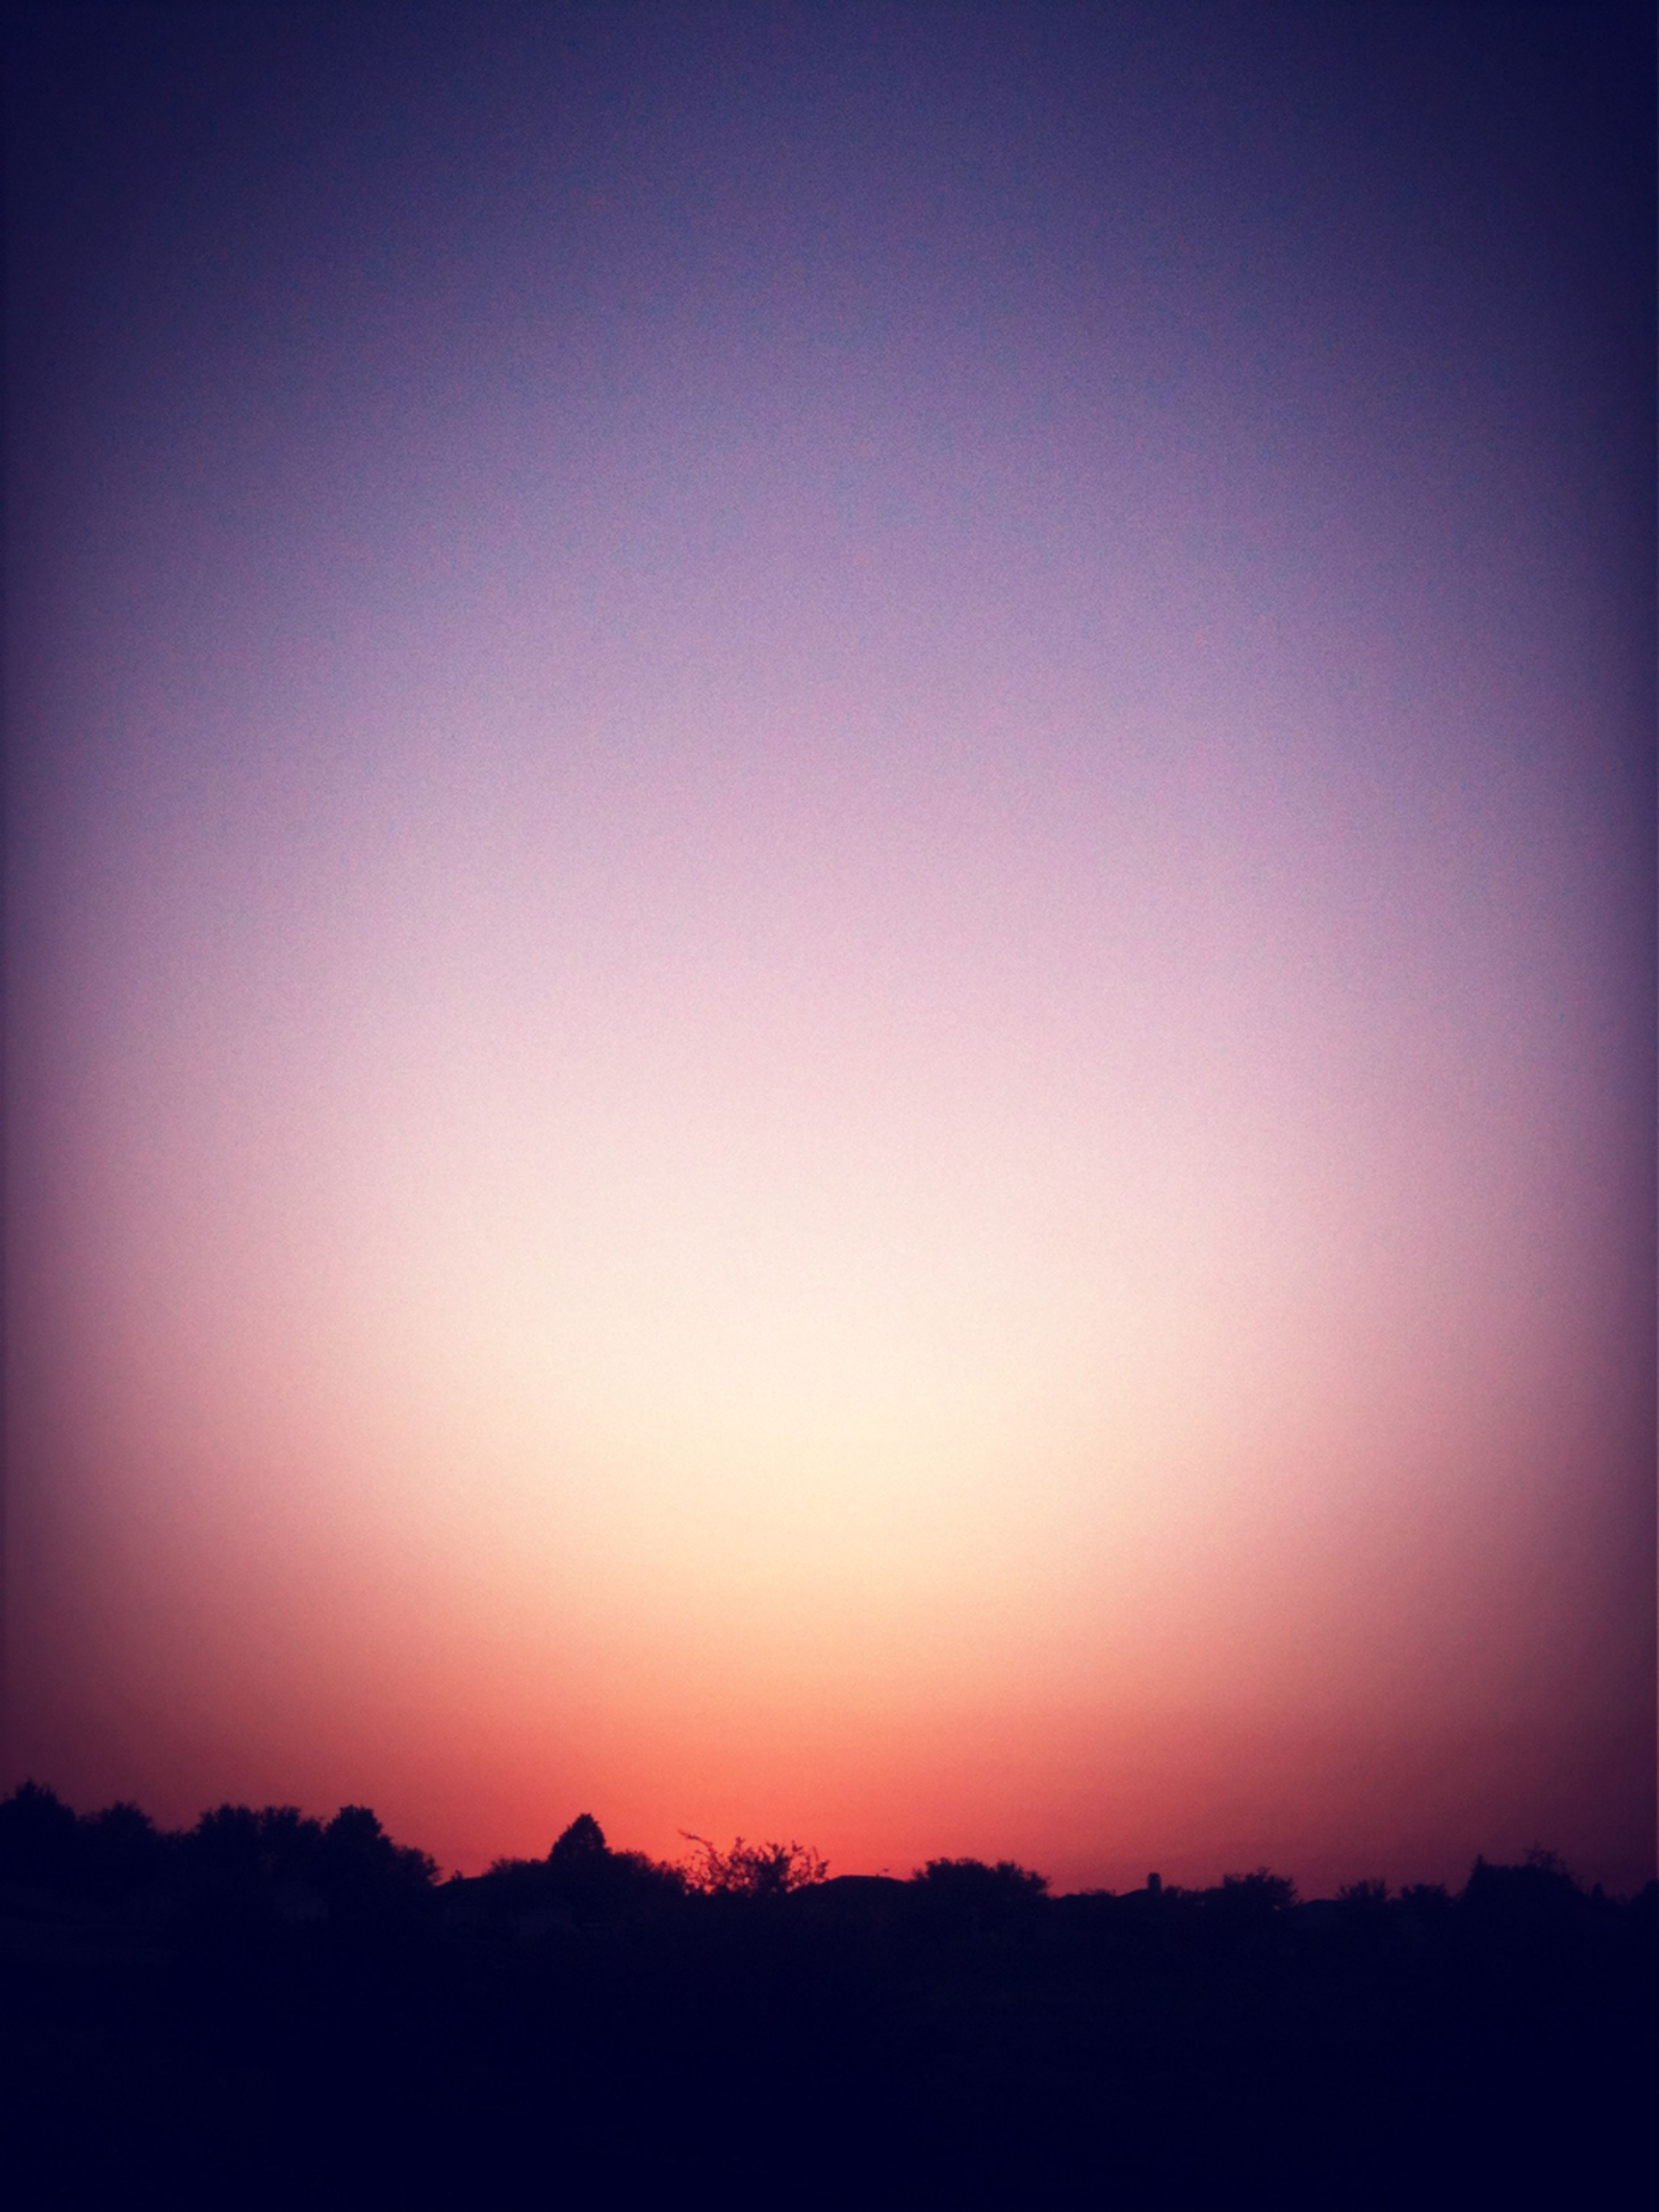 silhouette, copy space, sunset, tranquil scene, clear sky, scenics, tranquility, beauty in nature, nature, dark, tree, landscape, idyllic, dusk, outline, orange color, outdoors, no people, sky, non urban scene